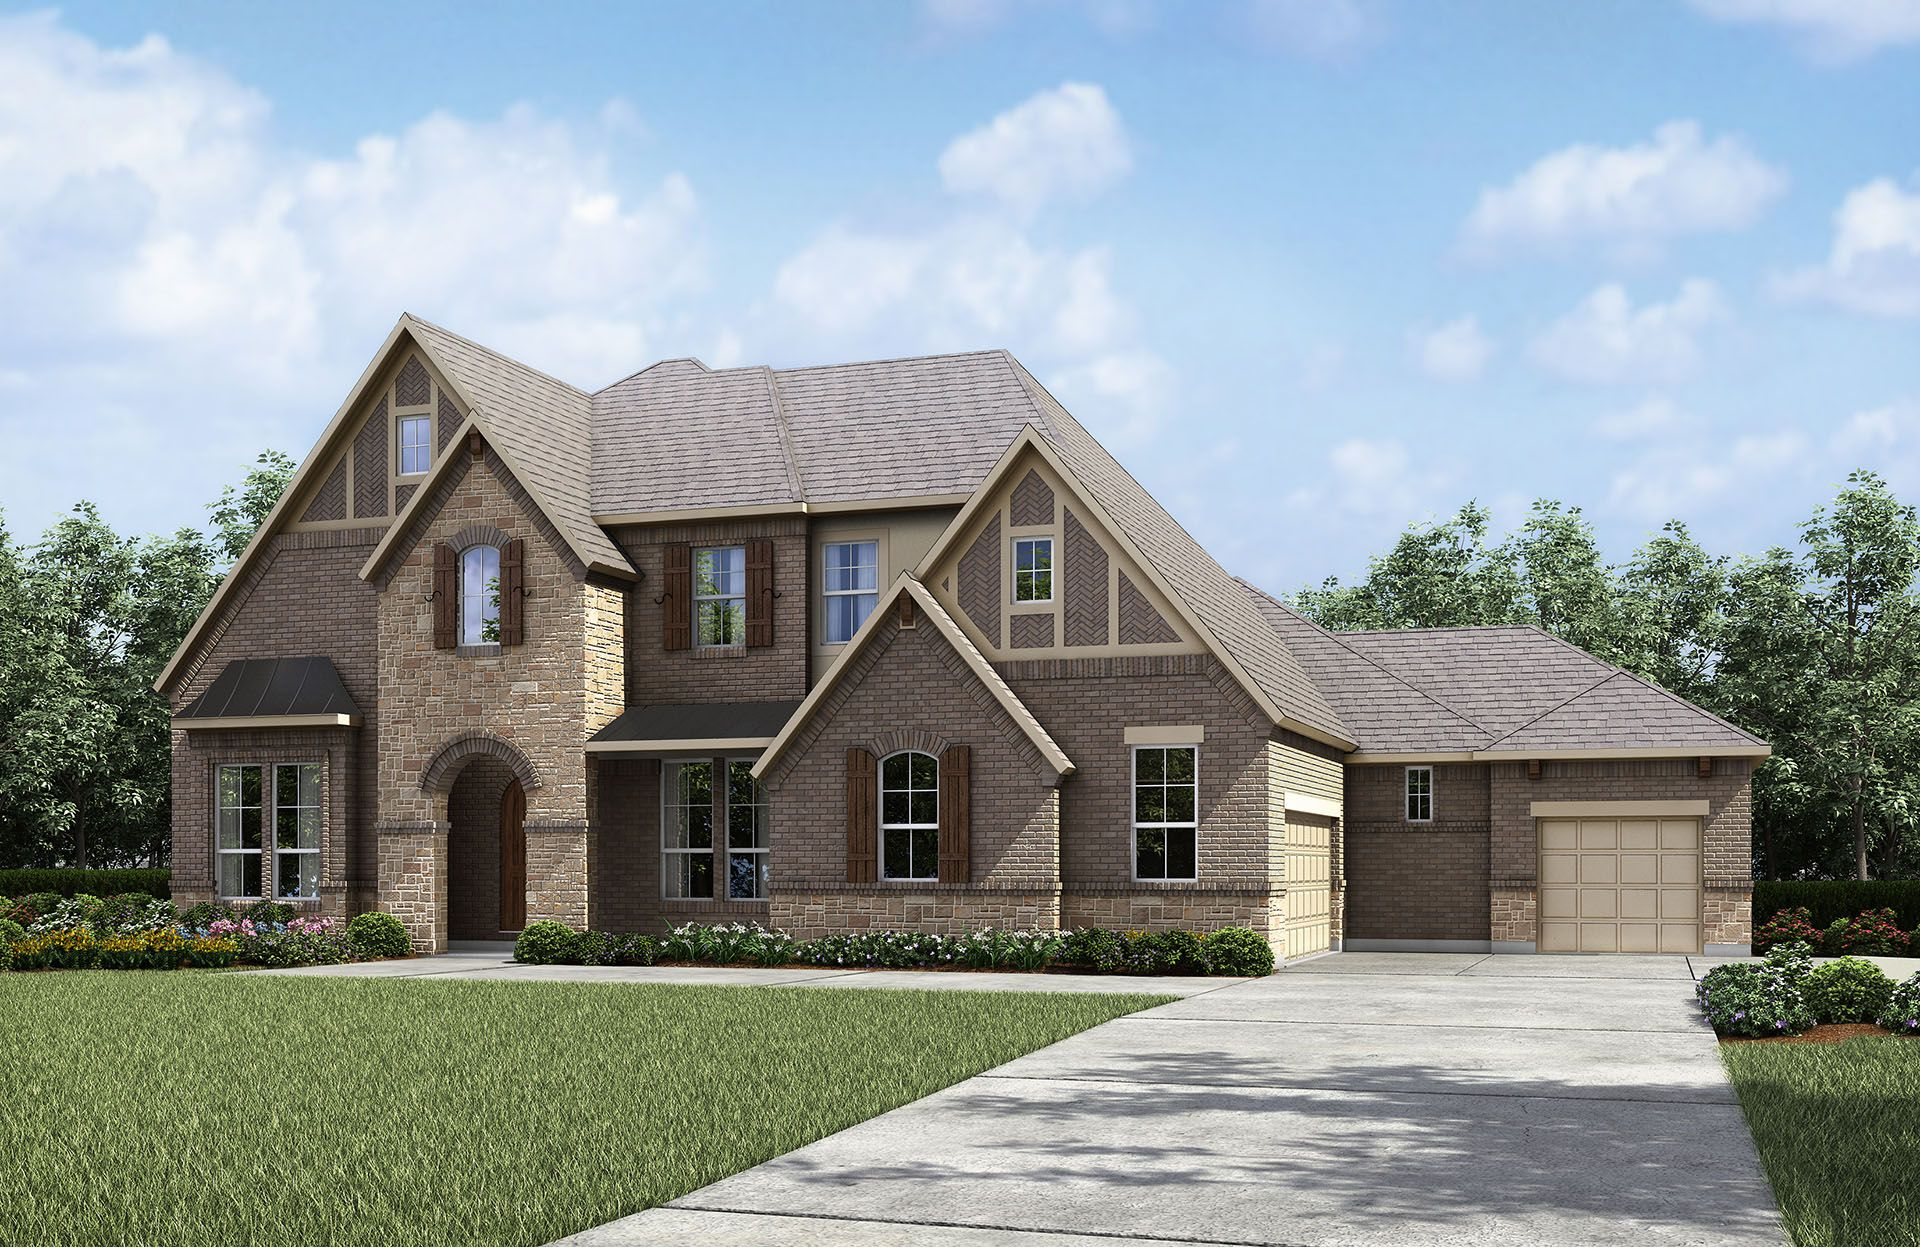 Single Family for Sale at Clearwater Ranch - Colinas Ii 212 Bold Sundown Liberty Hill, Texas 78642 United States